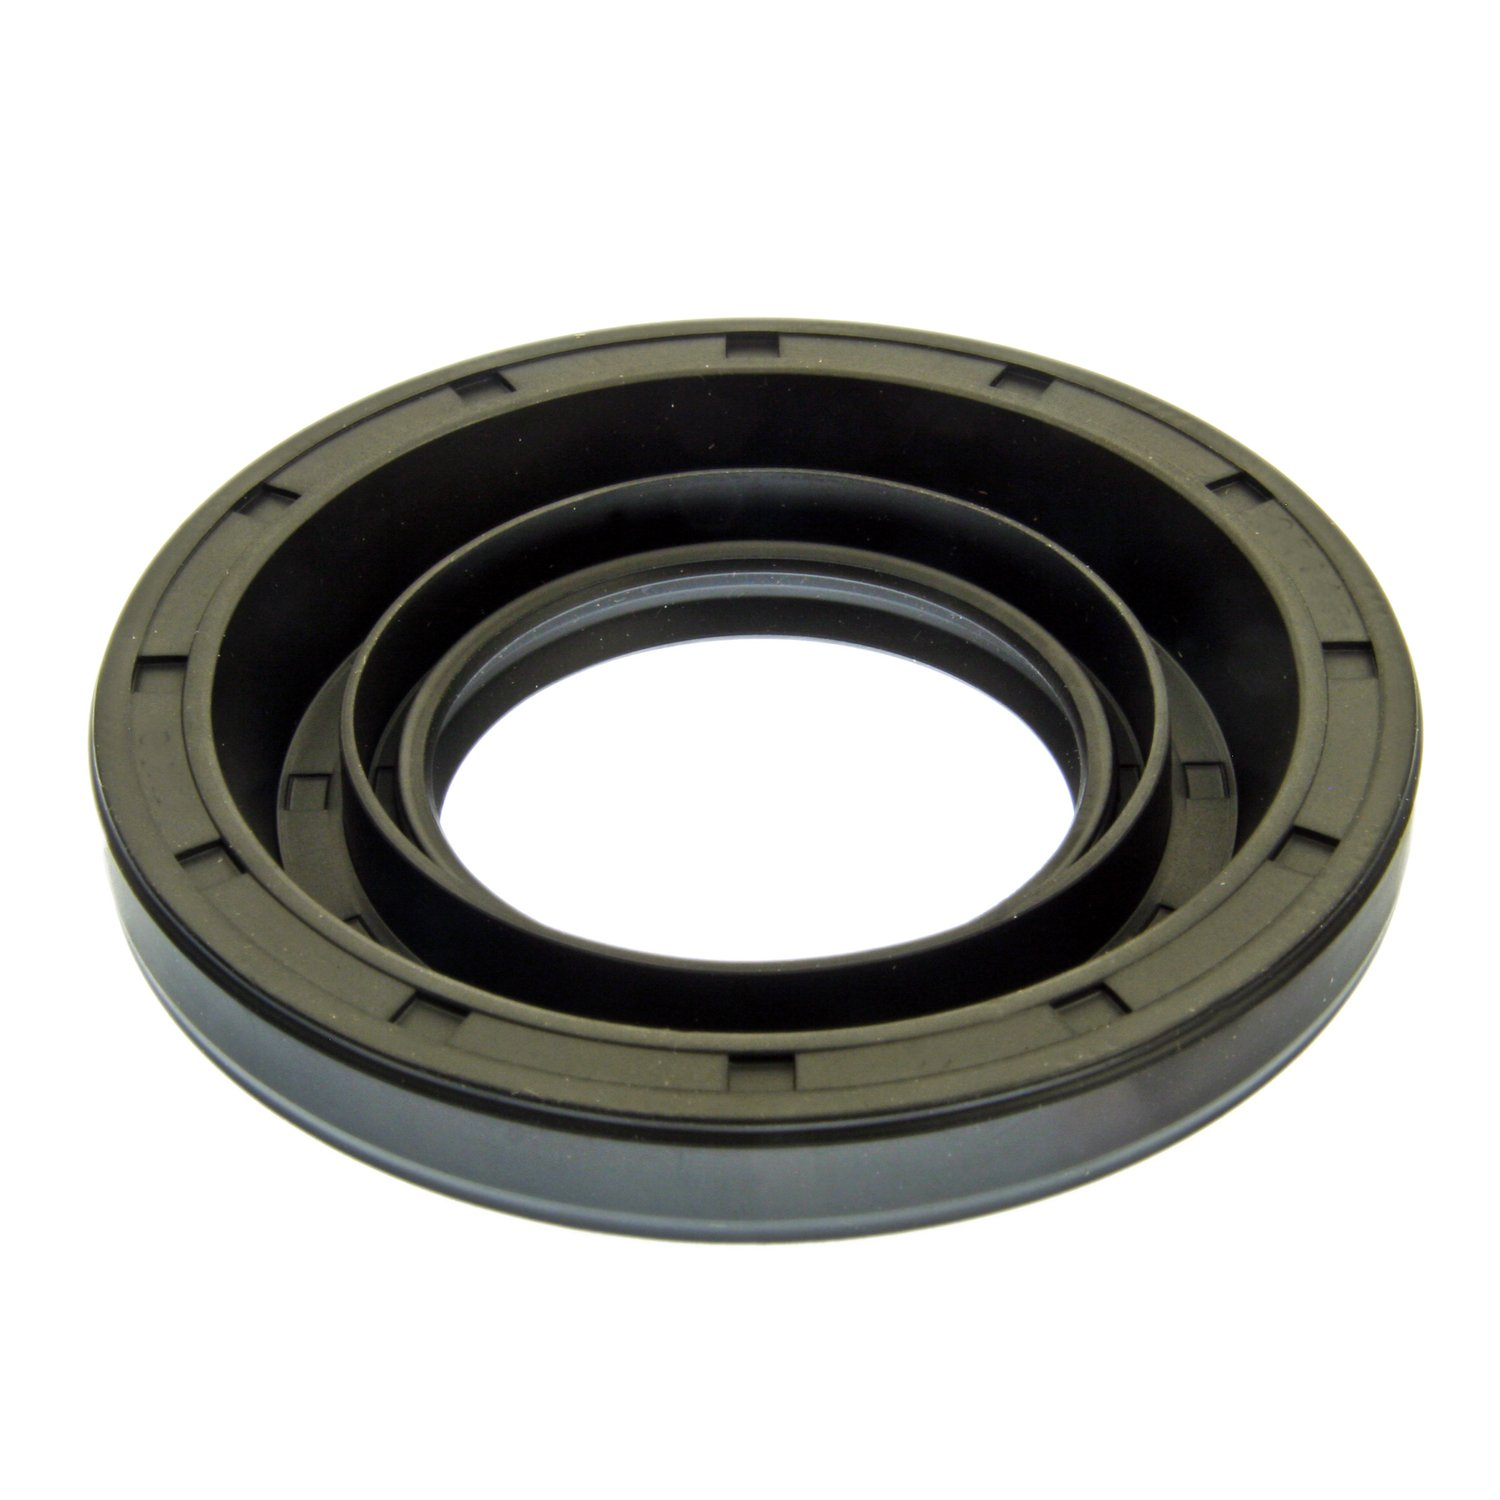 Precision 710397 Auto and Manual Transmission Output Shaft Seal